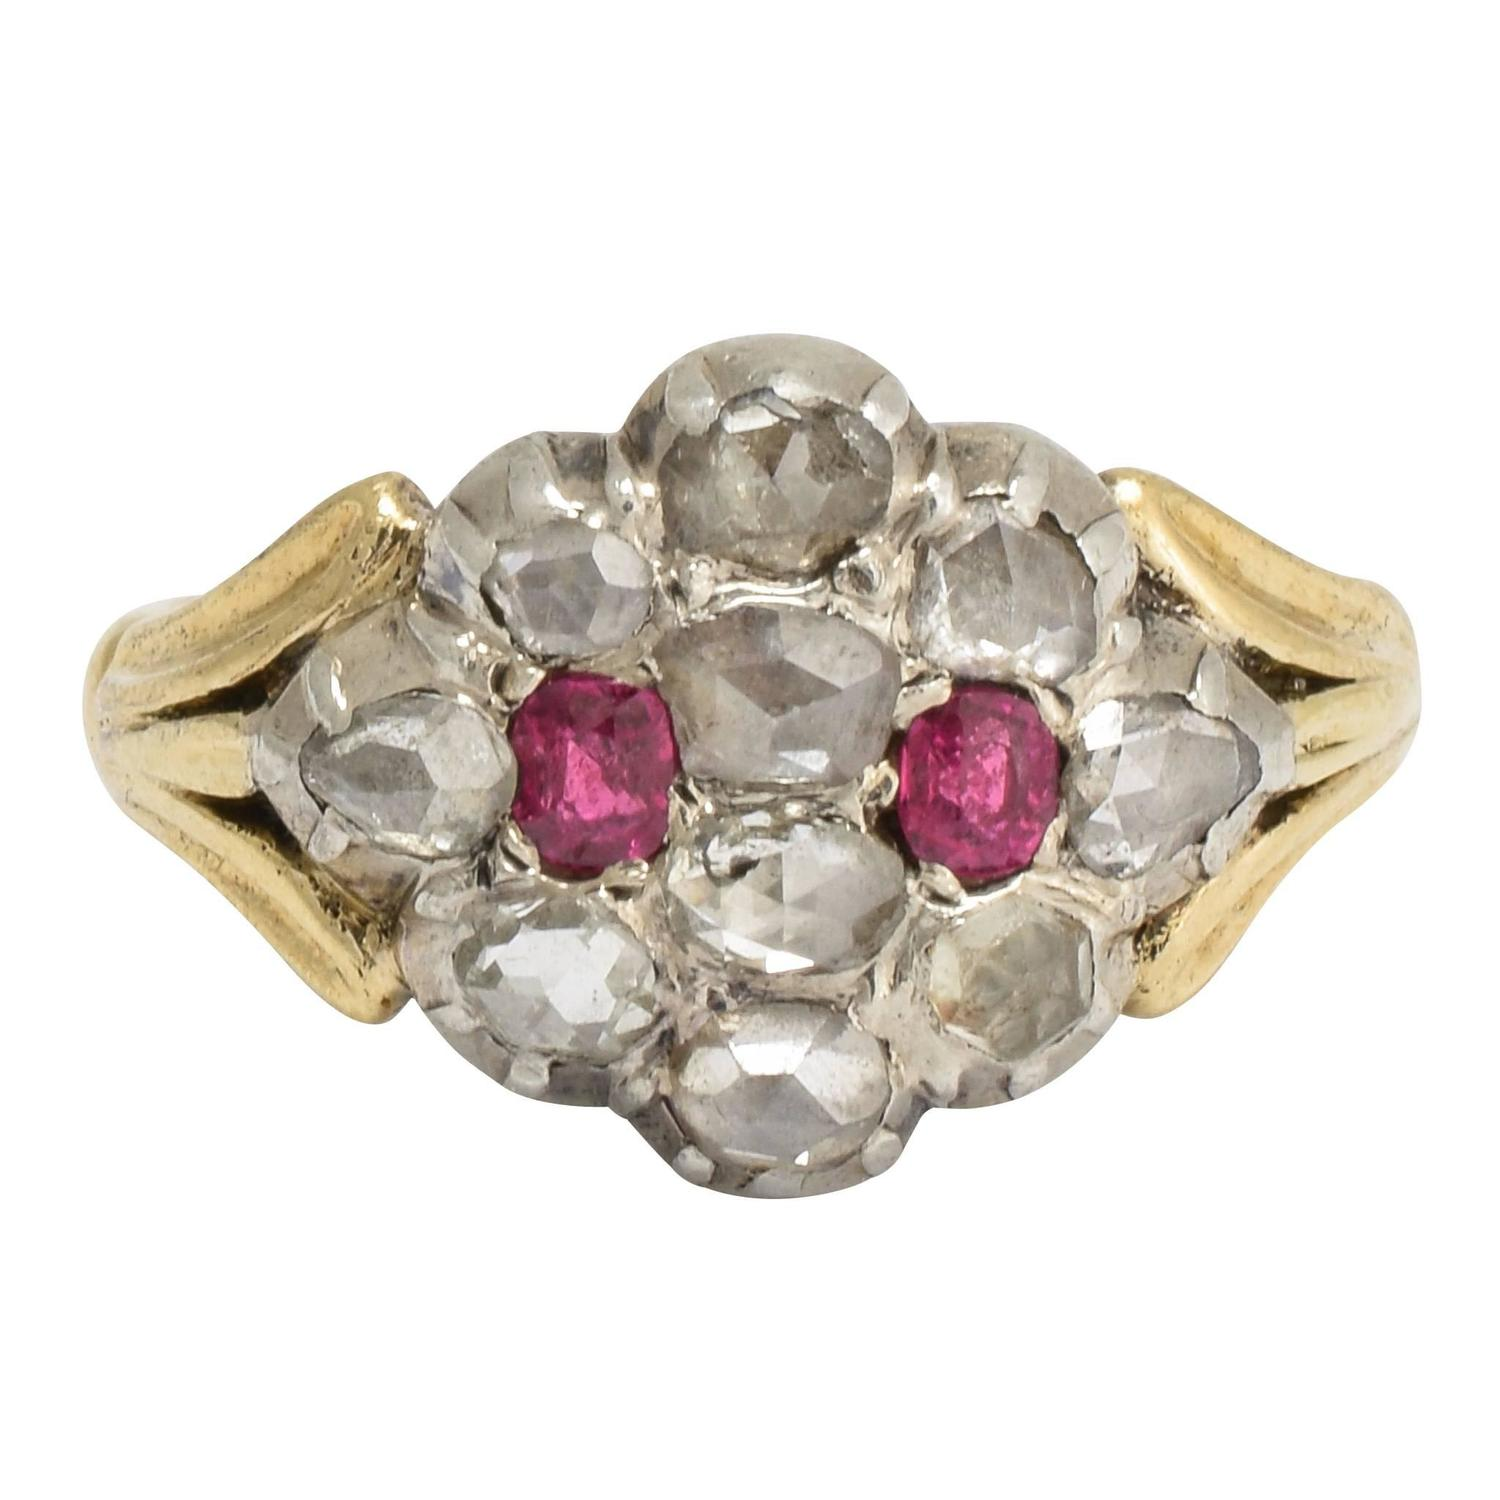 Early 1800s Rings 38 For Sale at 1stdibs